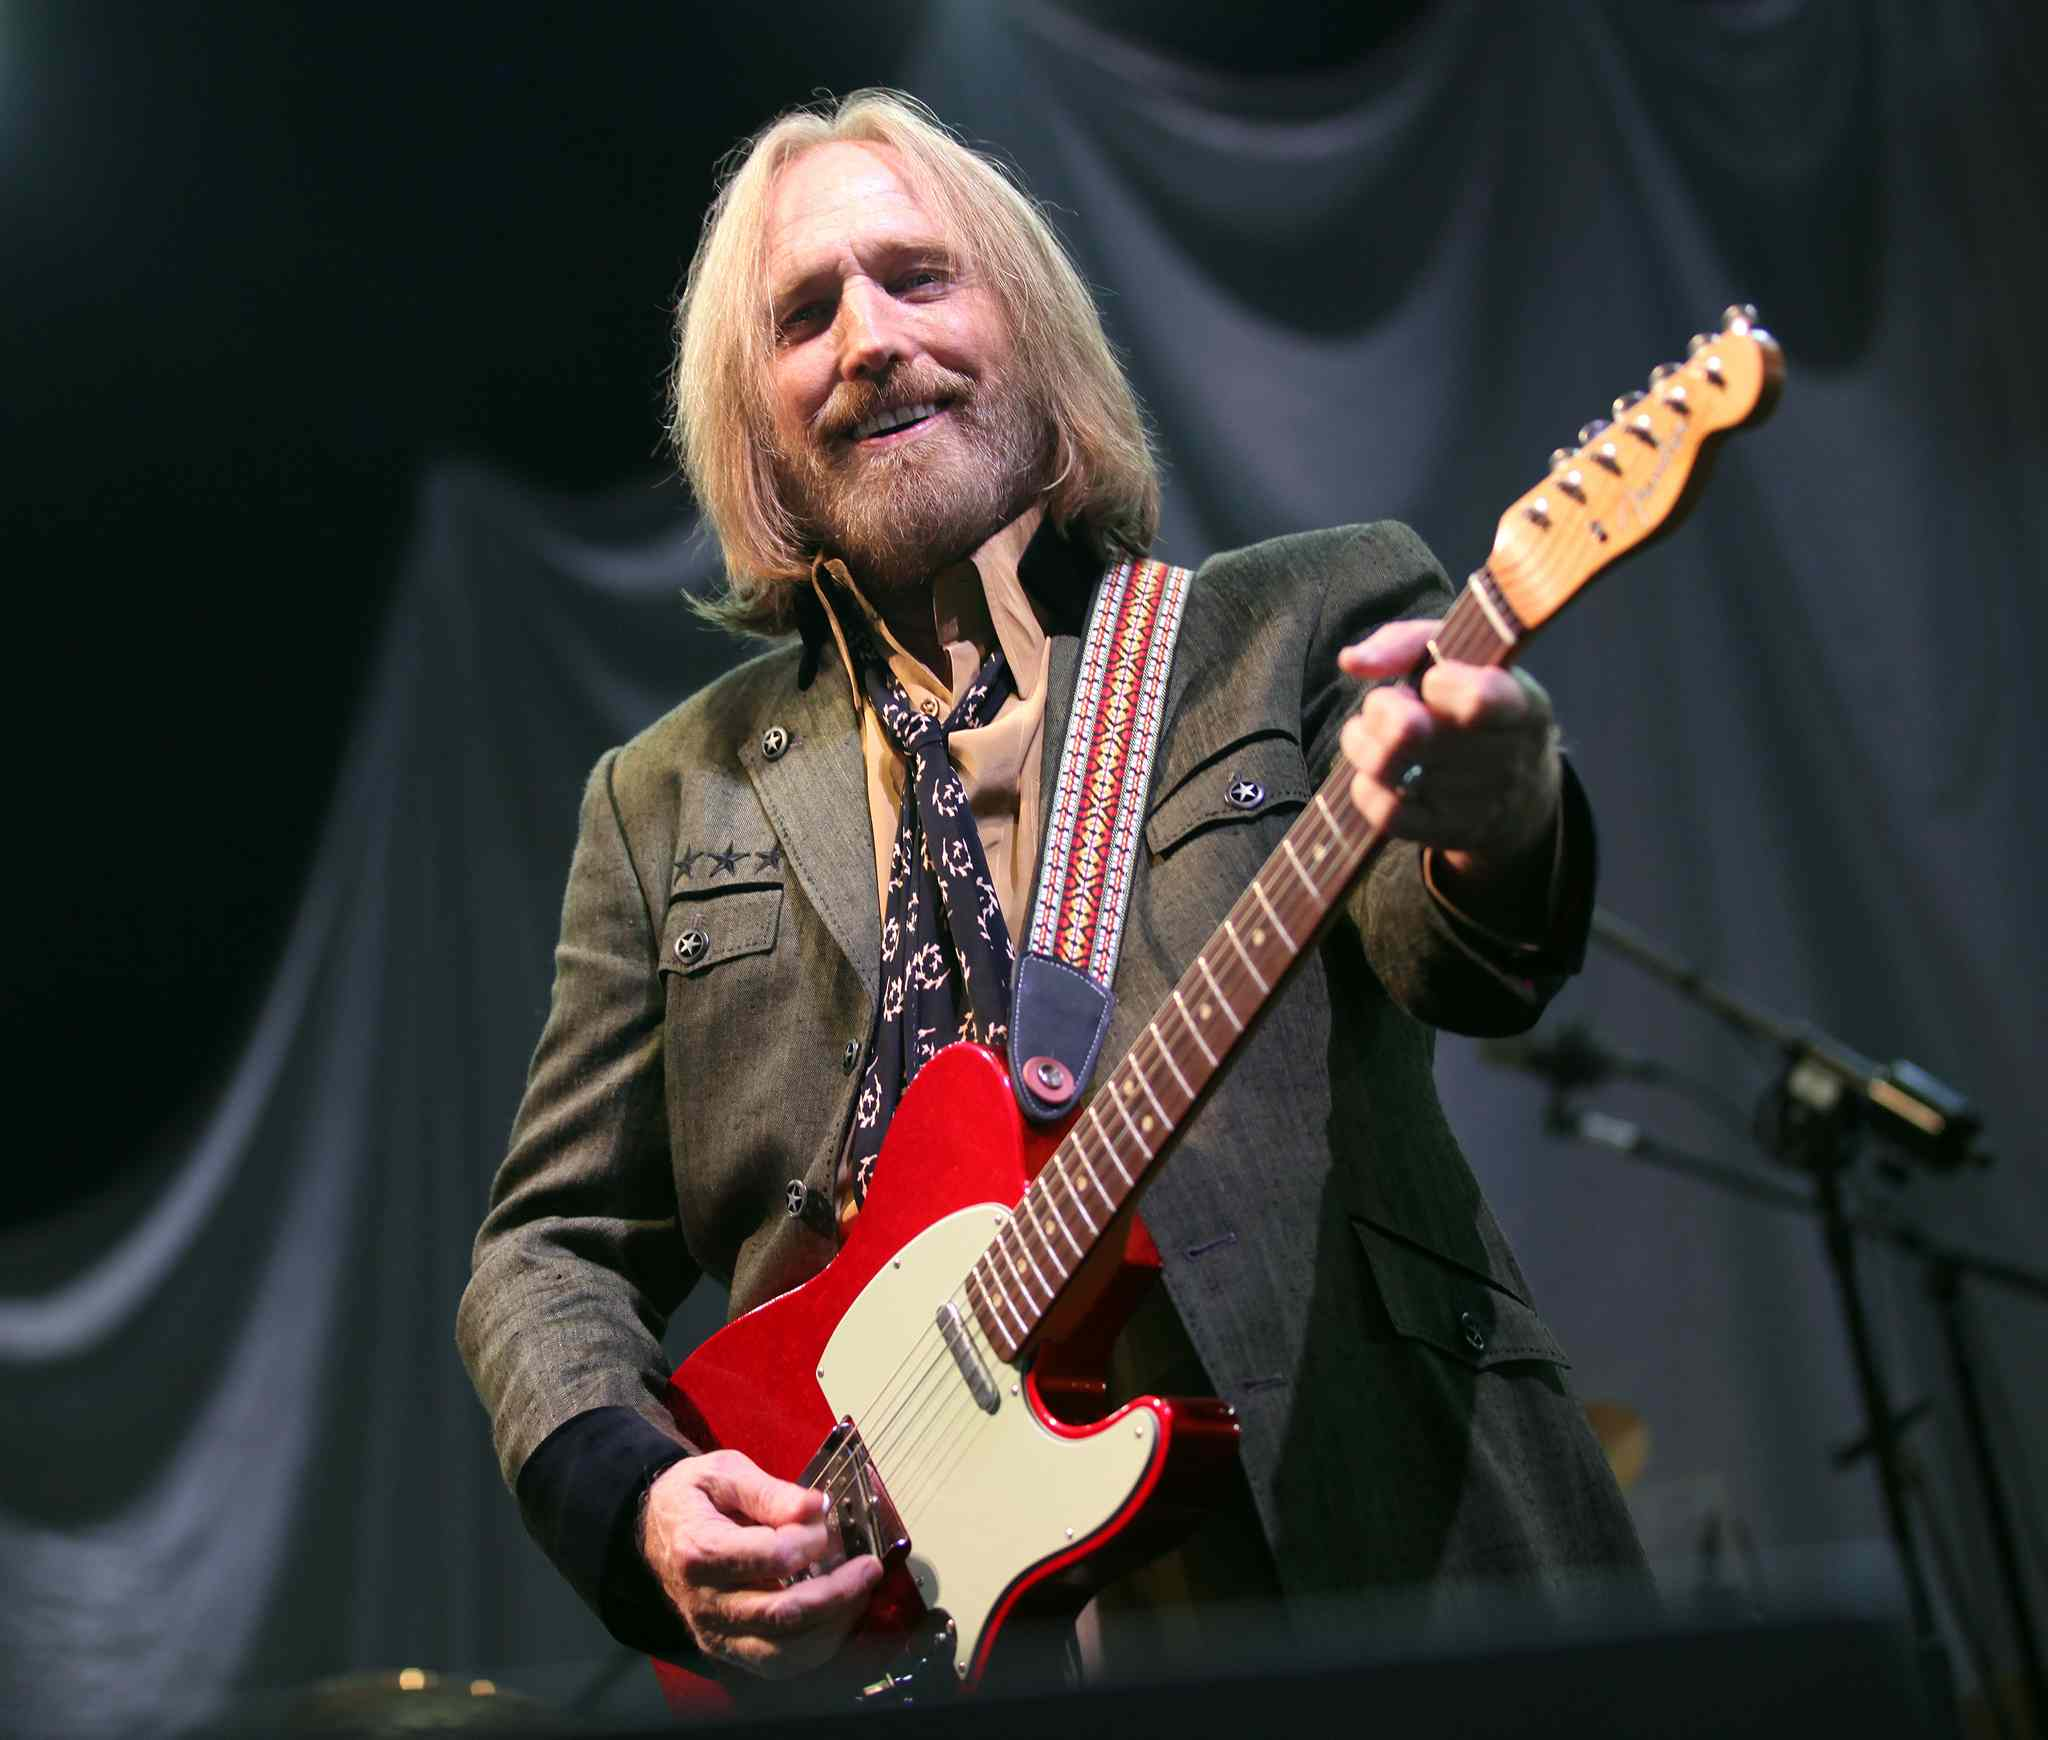 Tom Petty and the Heartbreakers tour in support of their latest album Hypnotic Eye Thursday night at the MTS Centre. (Phil Hossack / Winnipeg Free Press)